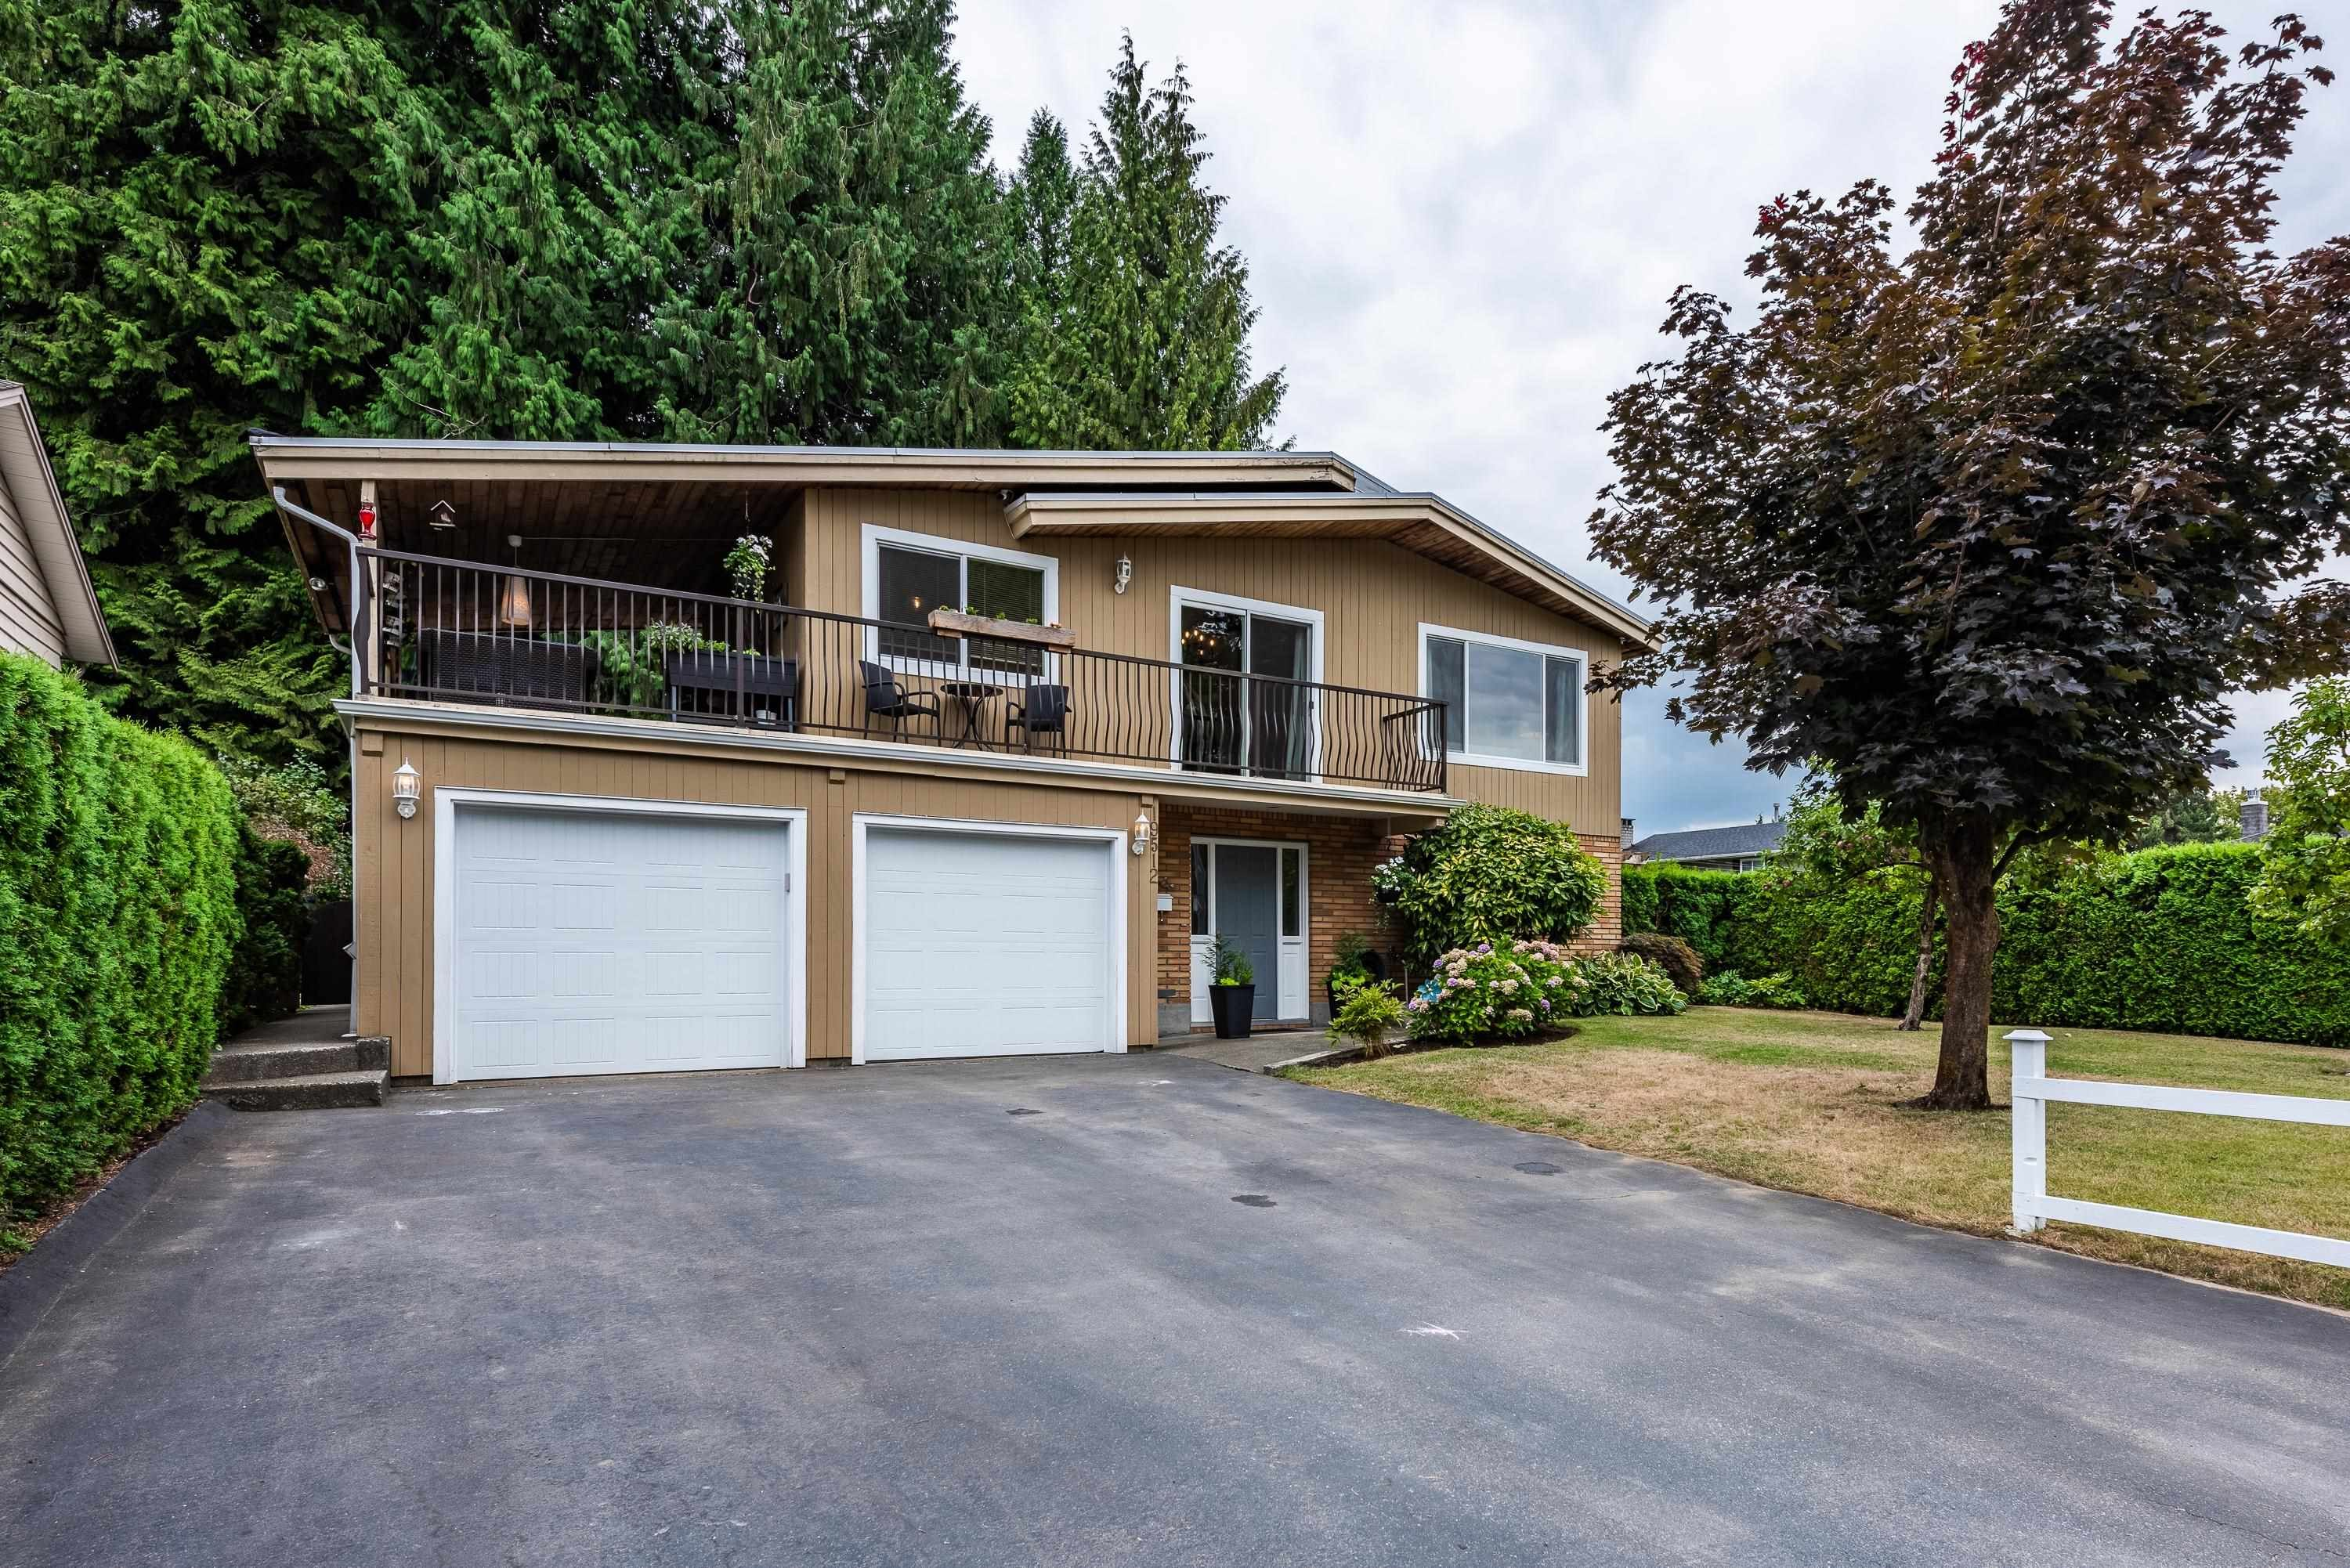 Main Photo: 19512 120 Avenue in Pitt Meadows: Central Meadows House for sale : MLS®# R2611017